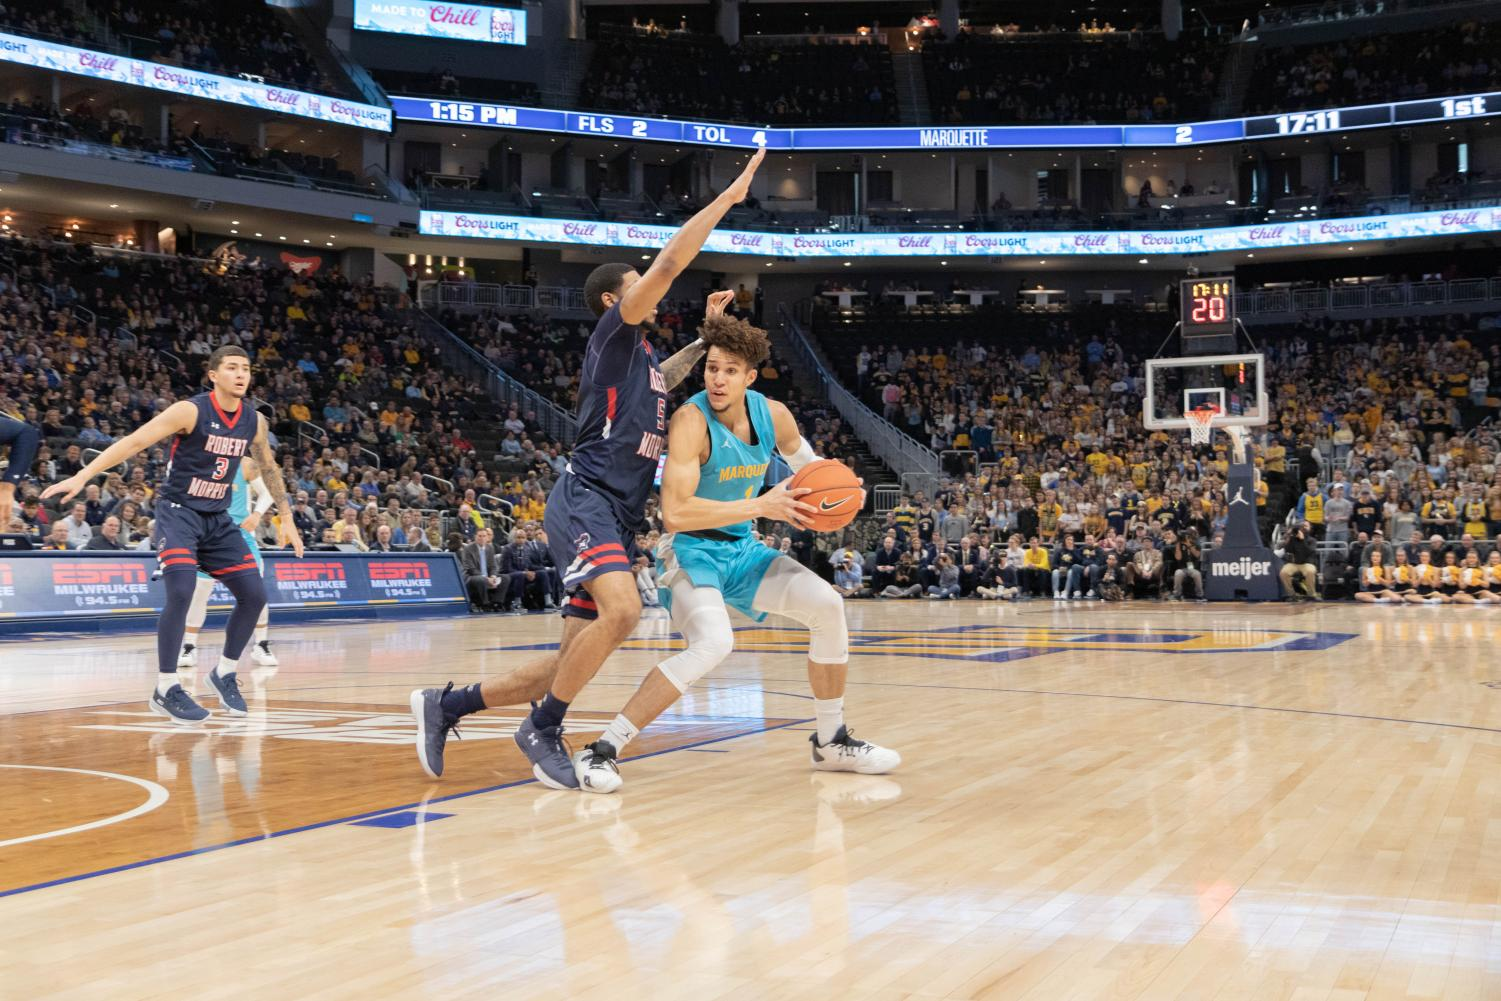 Sophomore forward Brendan Bailey scored a season-high 10 points in Marquette's 66-62 win over Robert Morris.